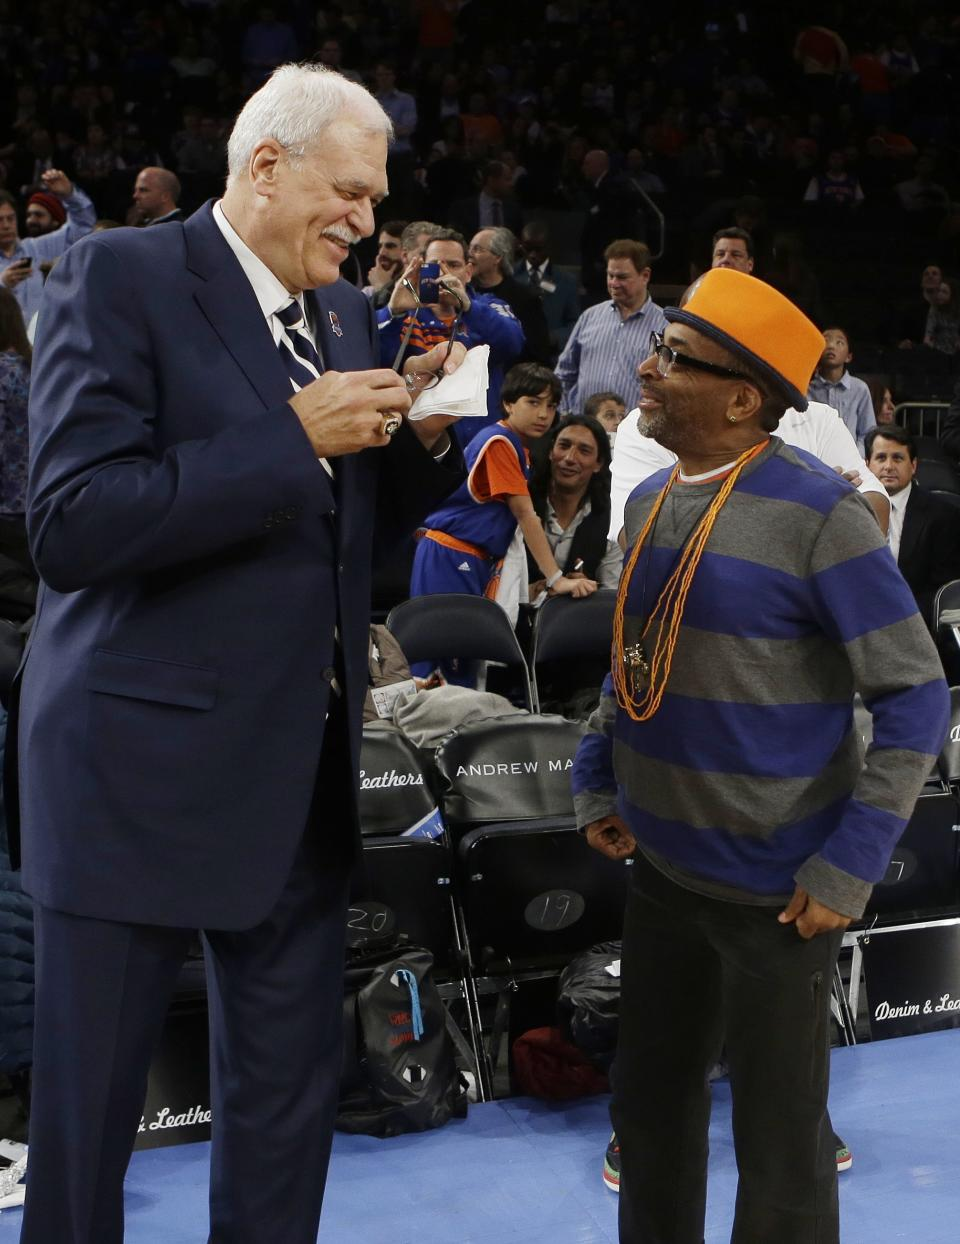 Former NBA coach Phil Jackson, left, and director Spike Lee, right, talk before a ceremony to honor the 1972-73 Championship New York Knicks team during the first half of an NBA basketball game between the Knicks and the Milwaukee Bucks, Friday, April 5, 2013, in New York. (AP Photo/Frank Franklin II)